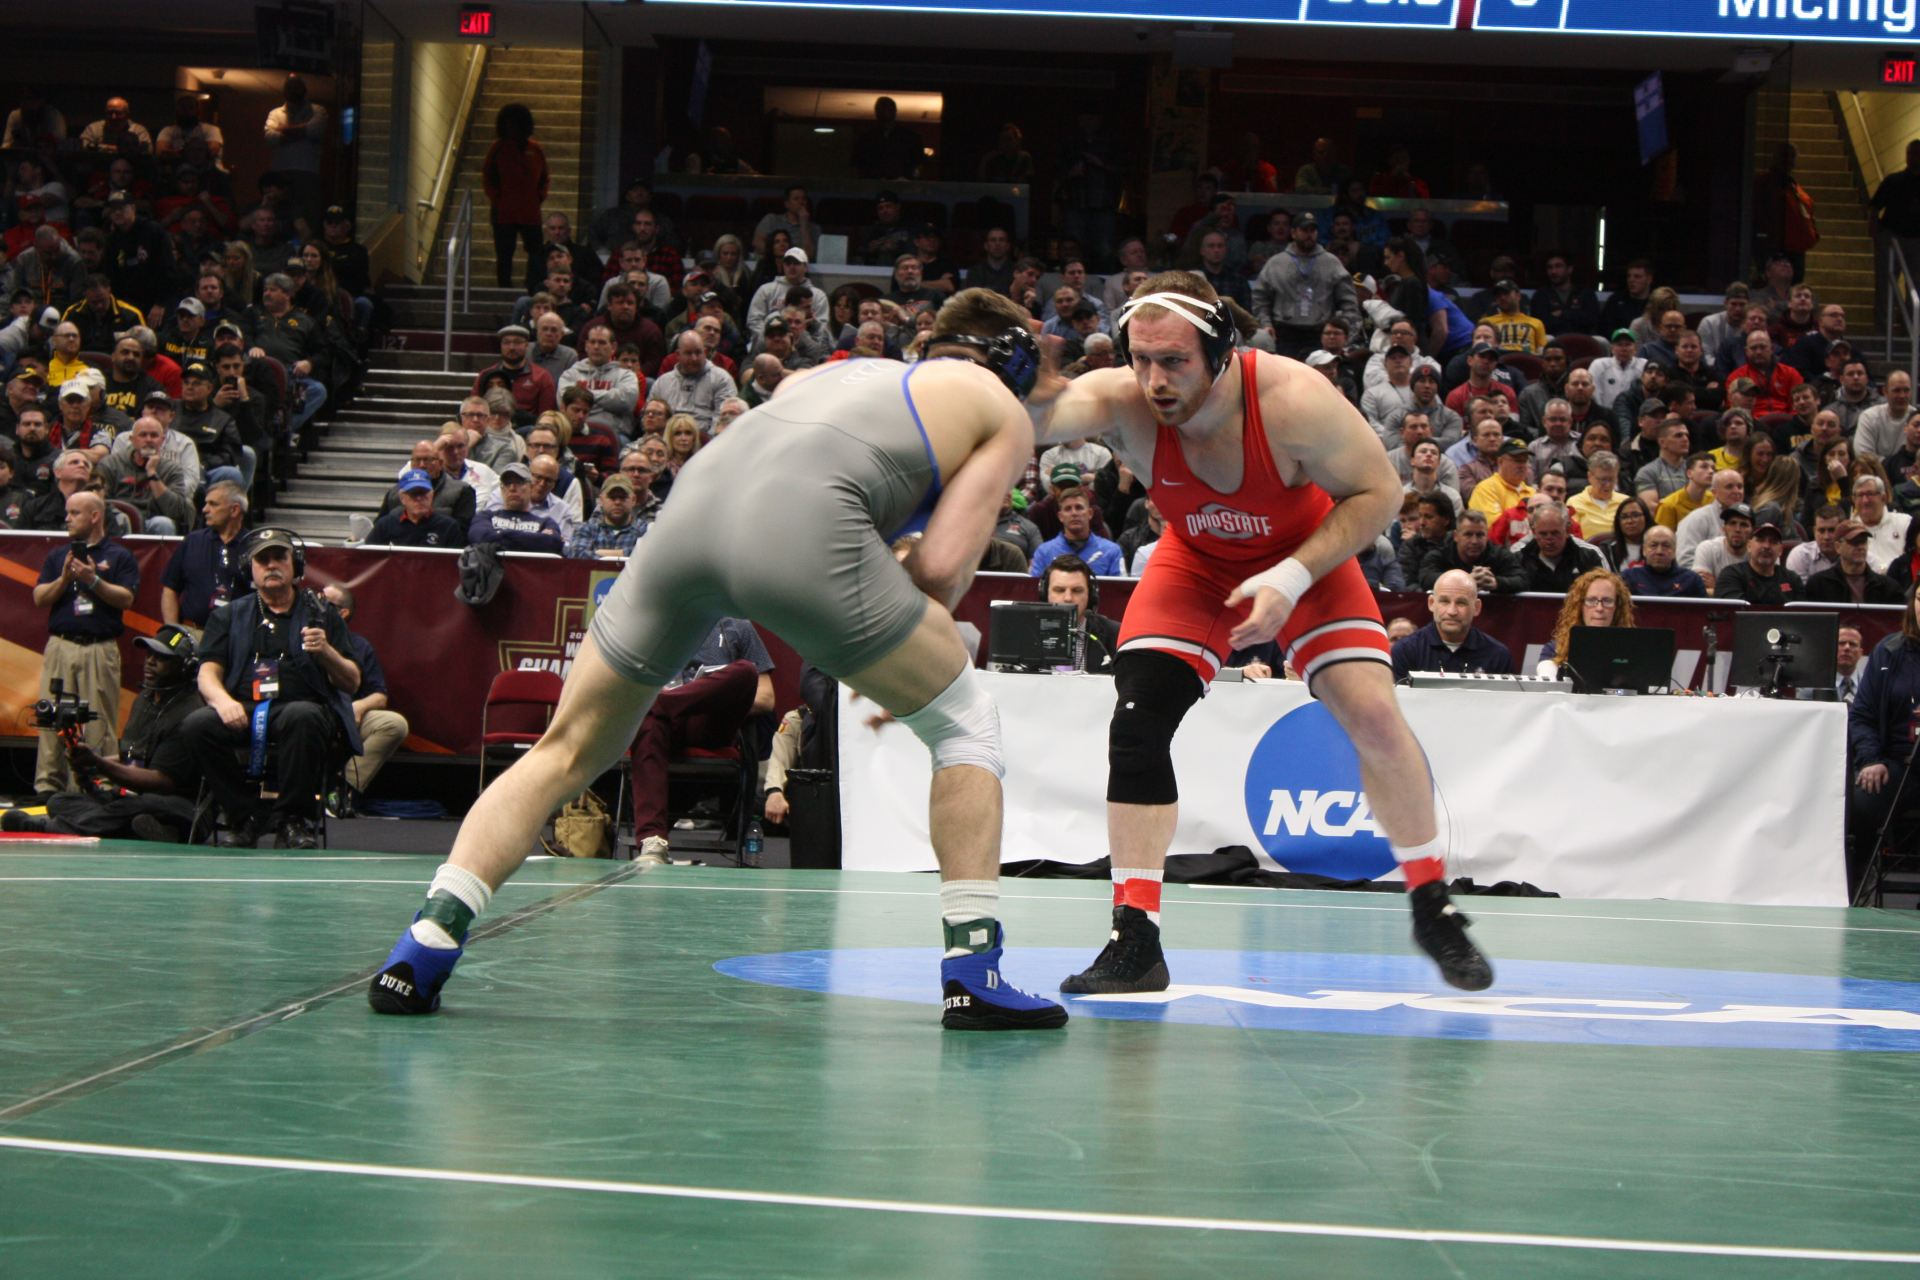 Wrestling: Kyle Snyder becomes three-time NCAA champion with 3-2 win against Adam Coon